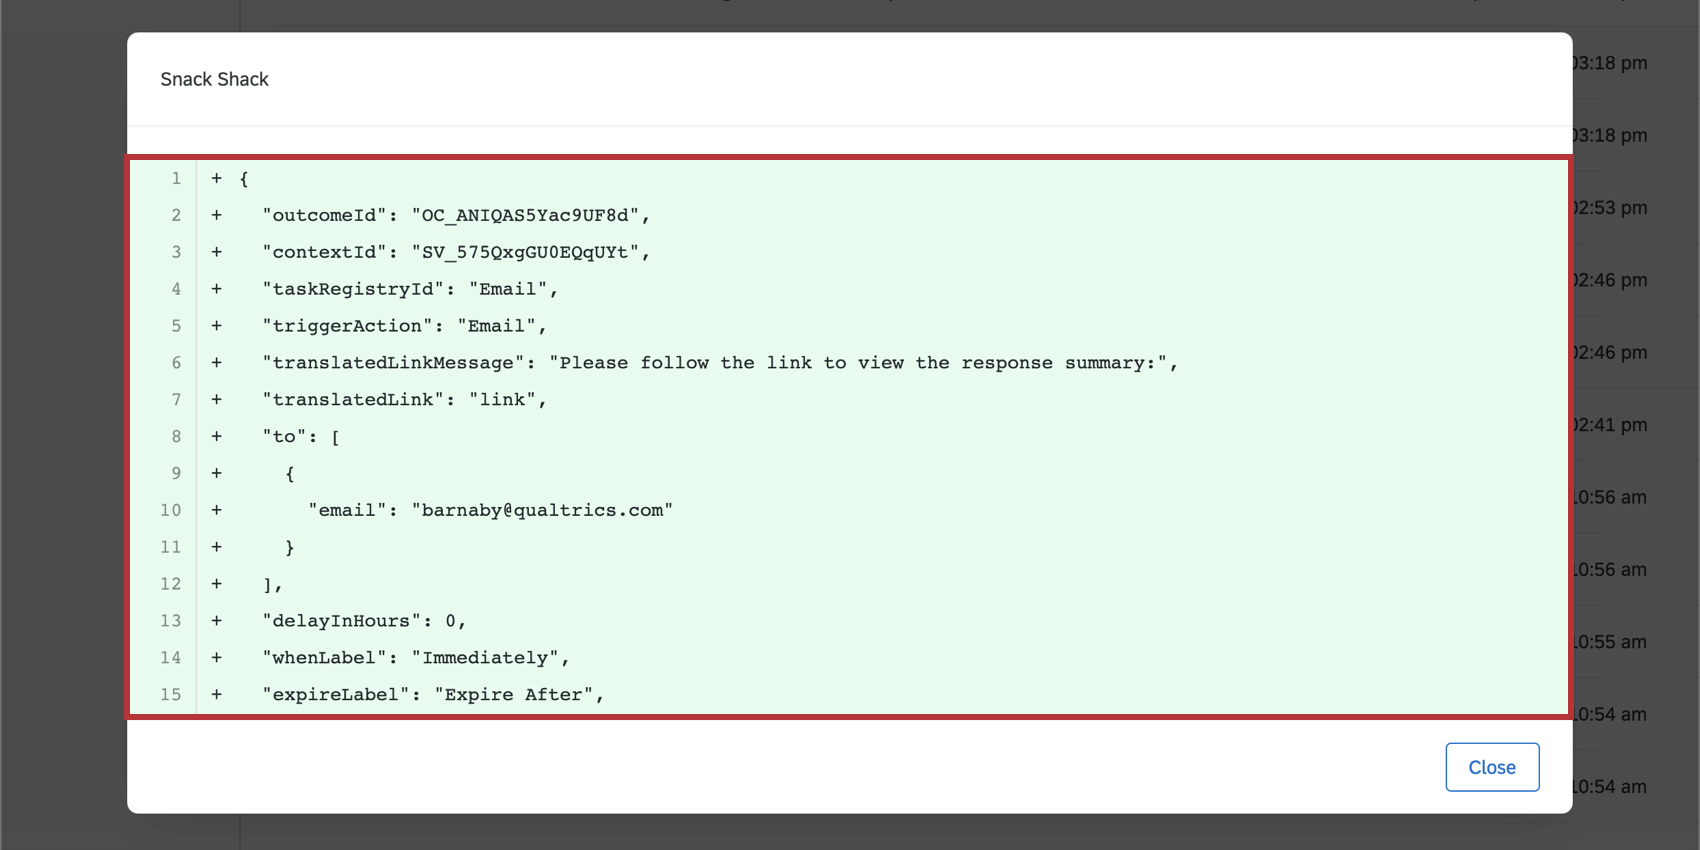 Coded Details in the Audit Log